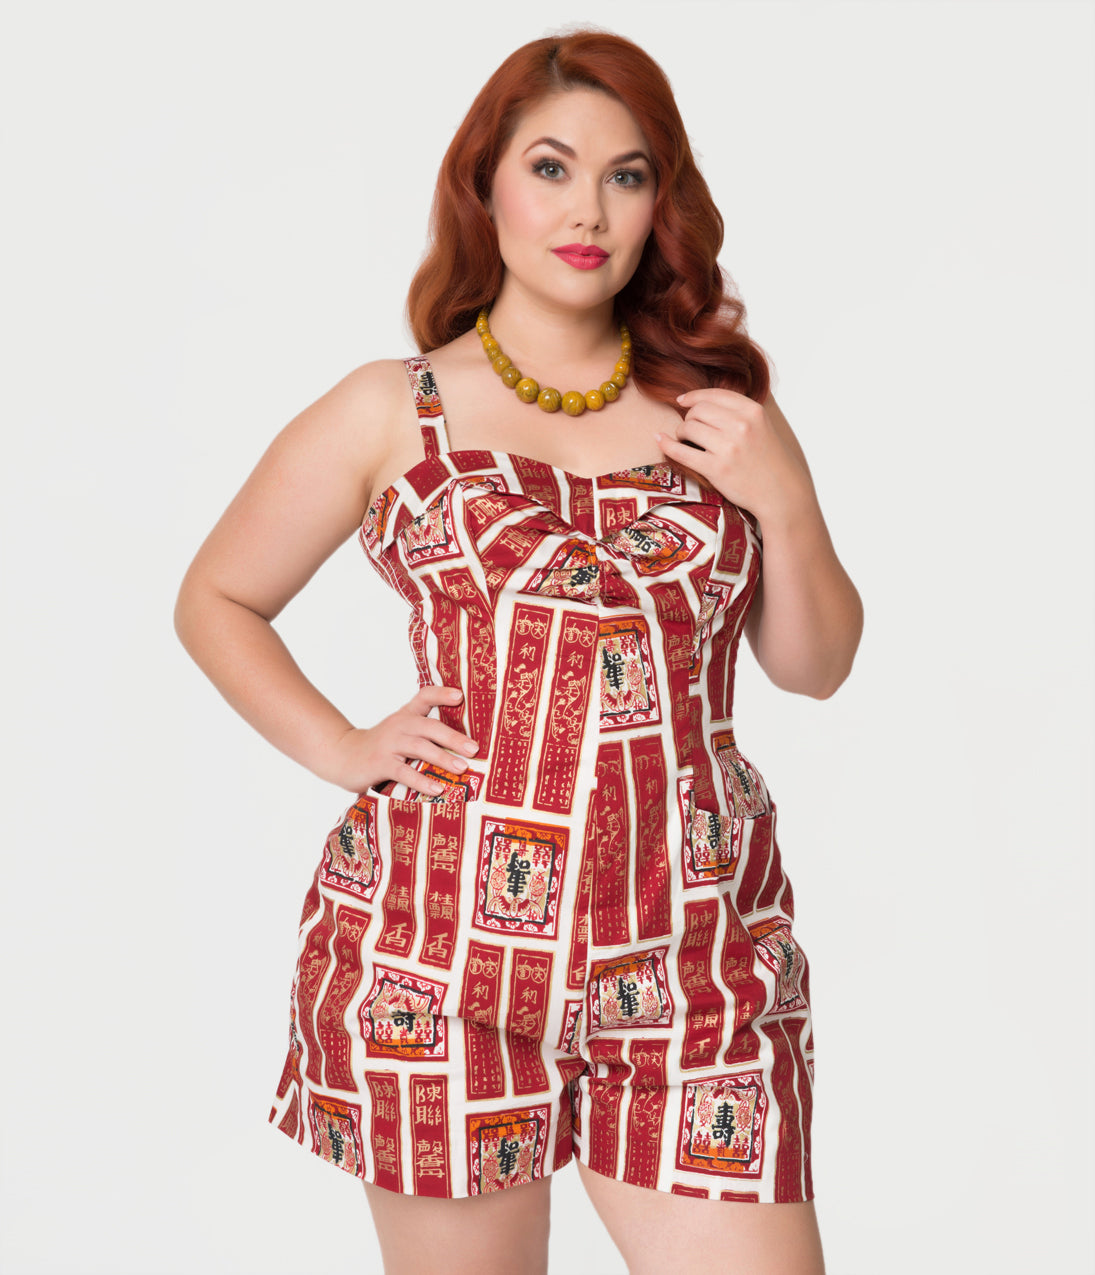 Vintage Rompers | Retro, Pin Up, Rockabilly Playsuits Alfred Shaheen Plus Size Golden Scrolls Print Hawaiian Romper $109.00 AT vintagedancer.com